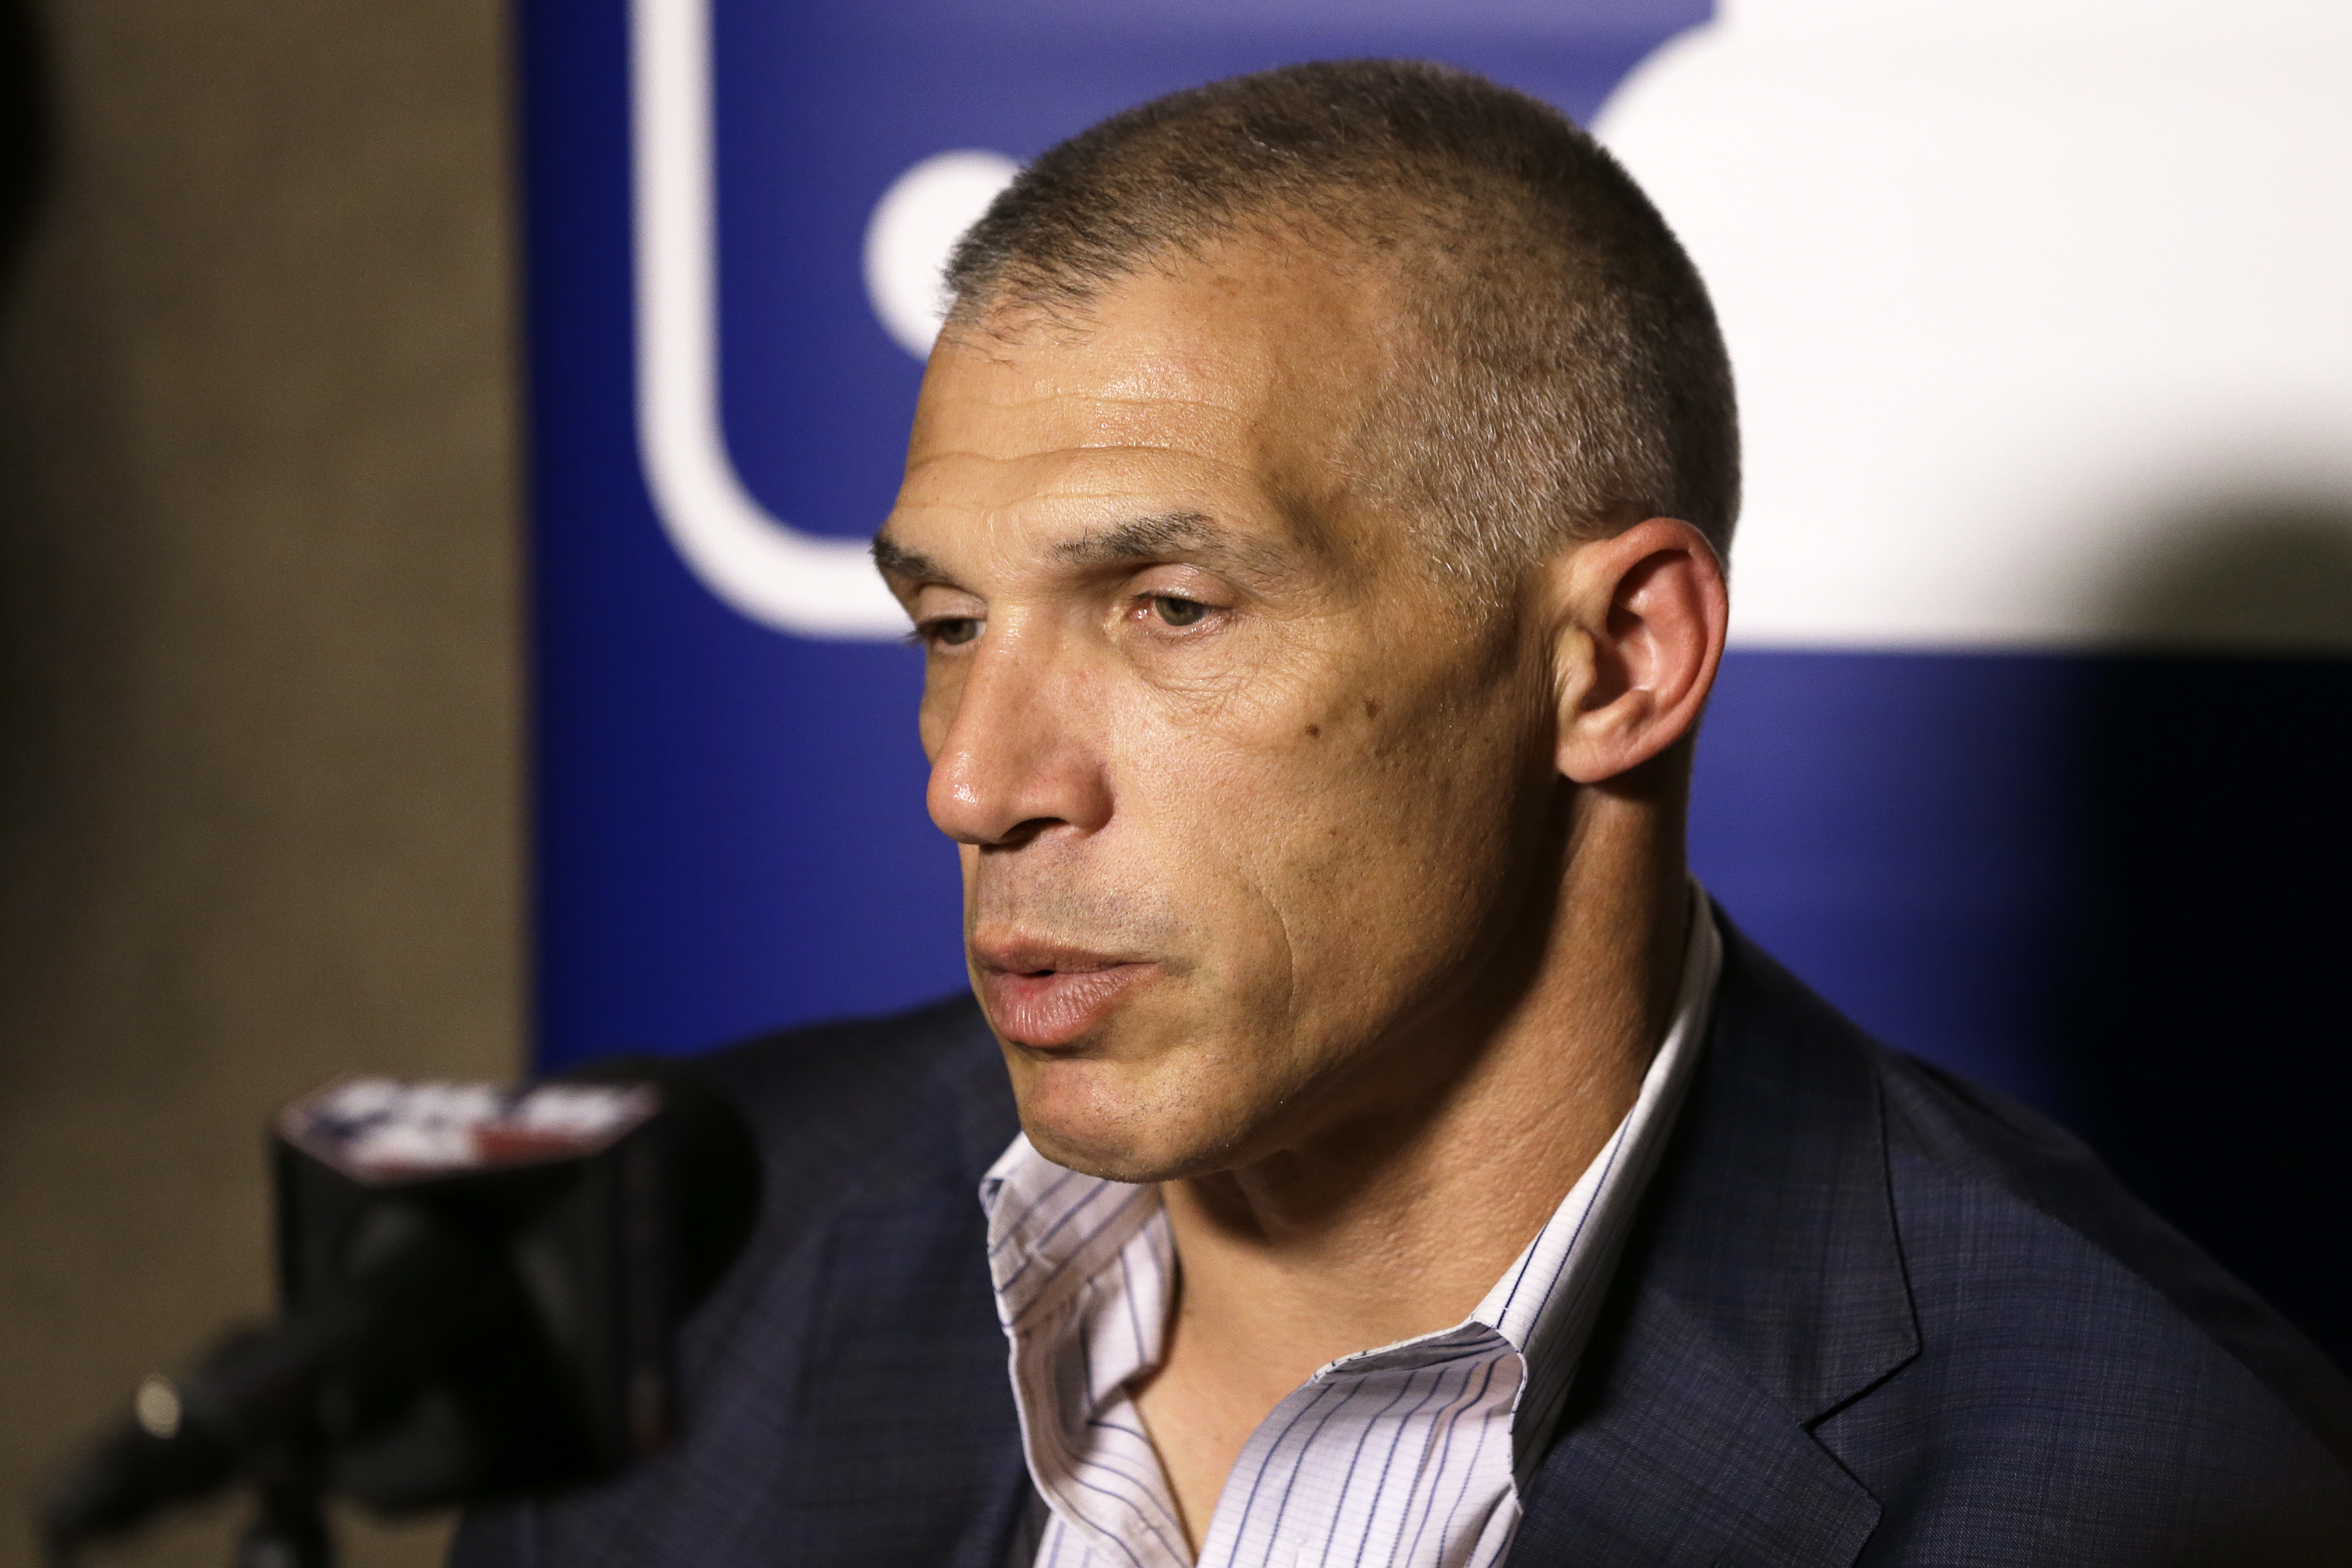 FILE - This Dec. 8, 2015 file photo shows New York Yankees manager Joe Girardi talking with reporters at the Major League Baseball winter meetings in Nashville, Tenn. Girardi said, Monday, Jan. 11, 2016, newly acquired left-hander Aroldis Chapman will go